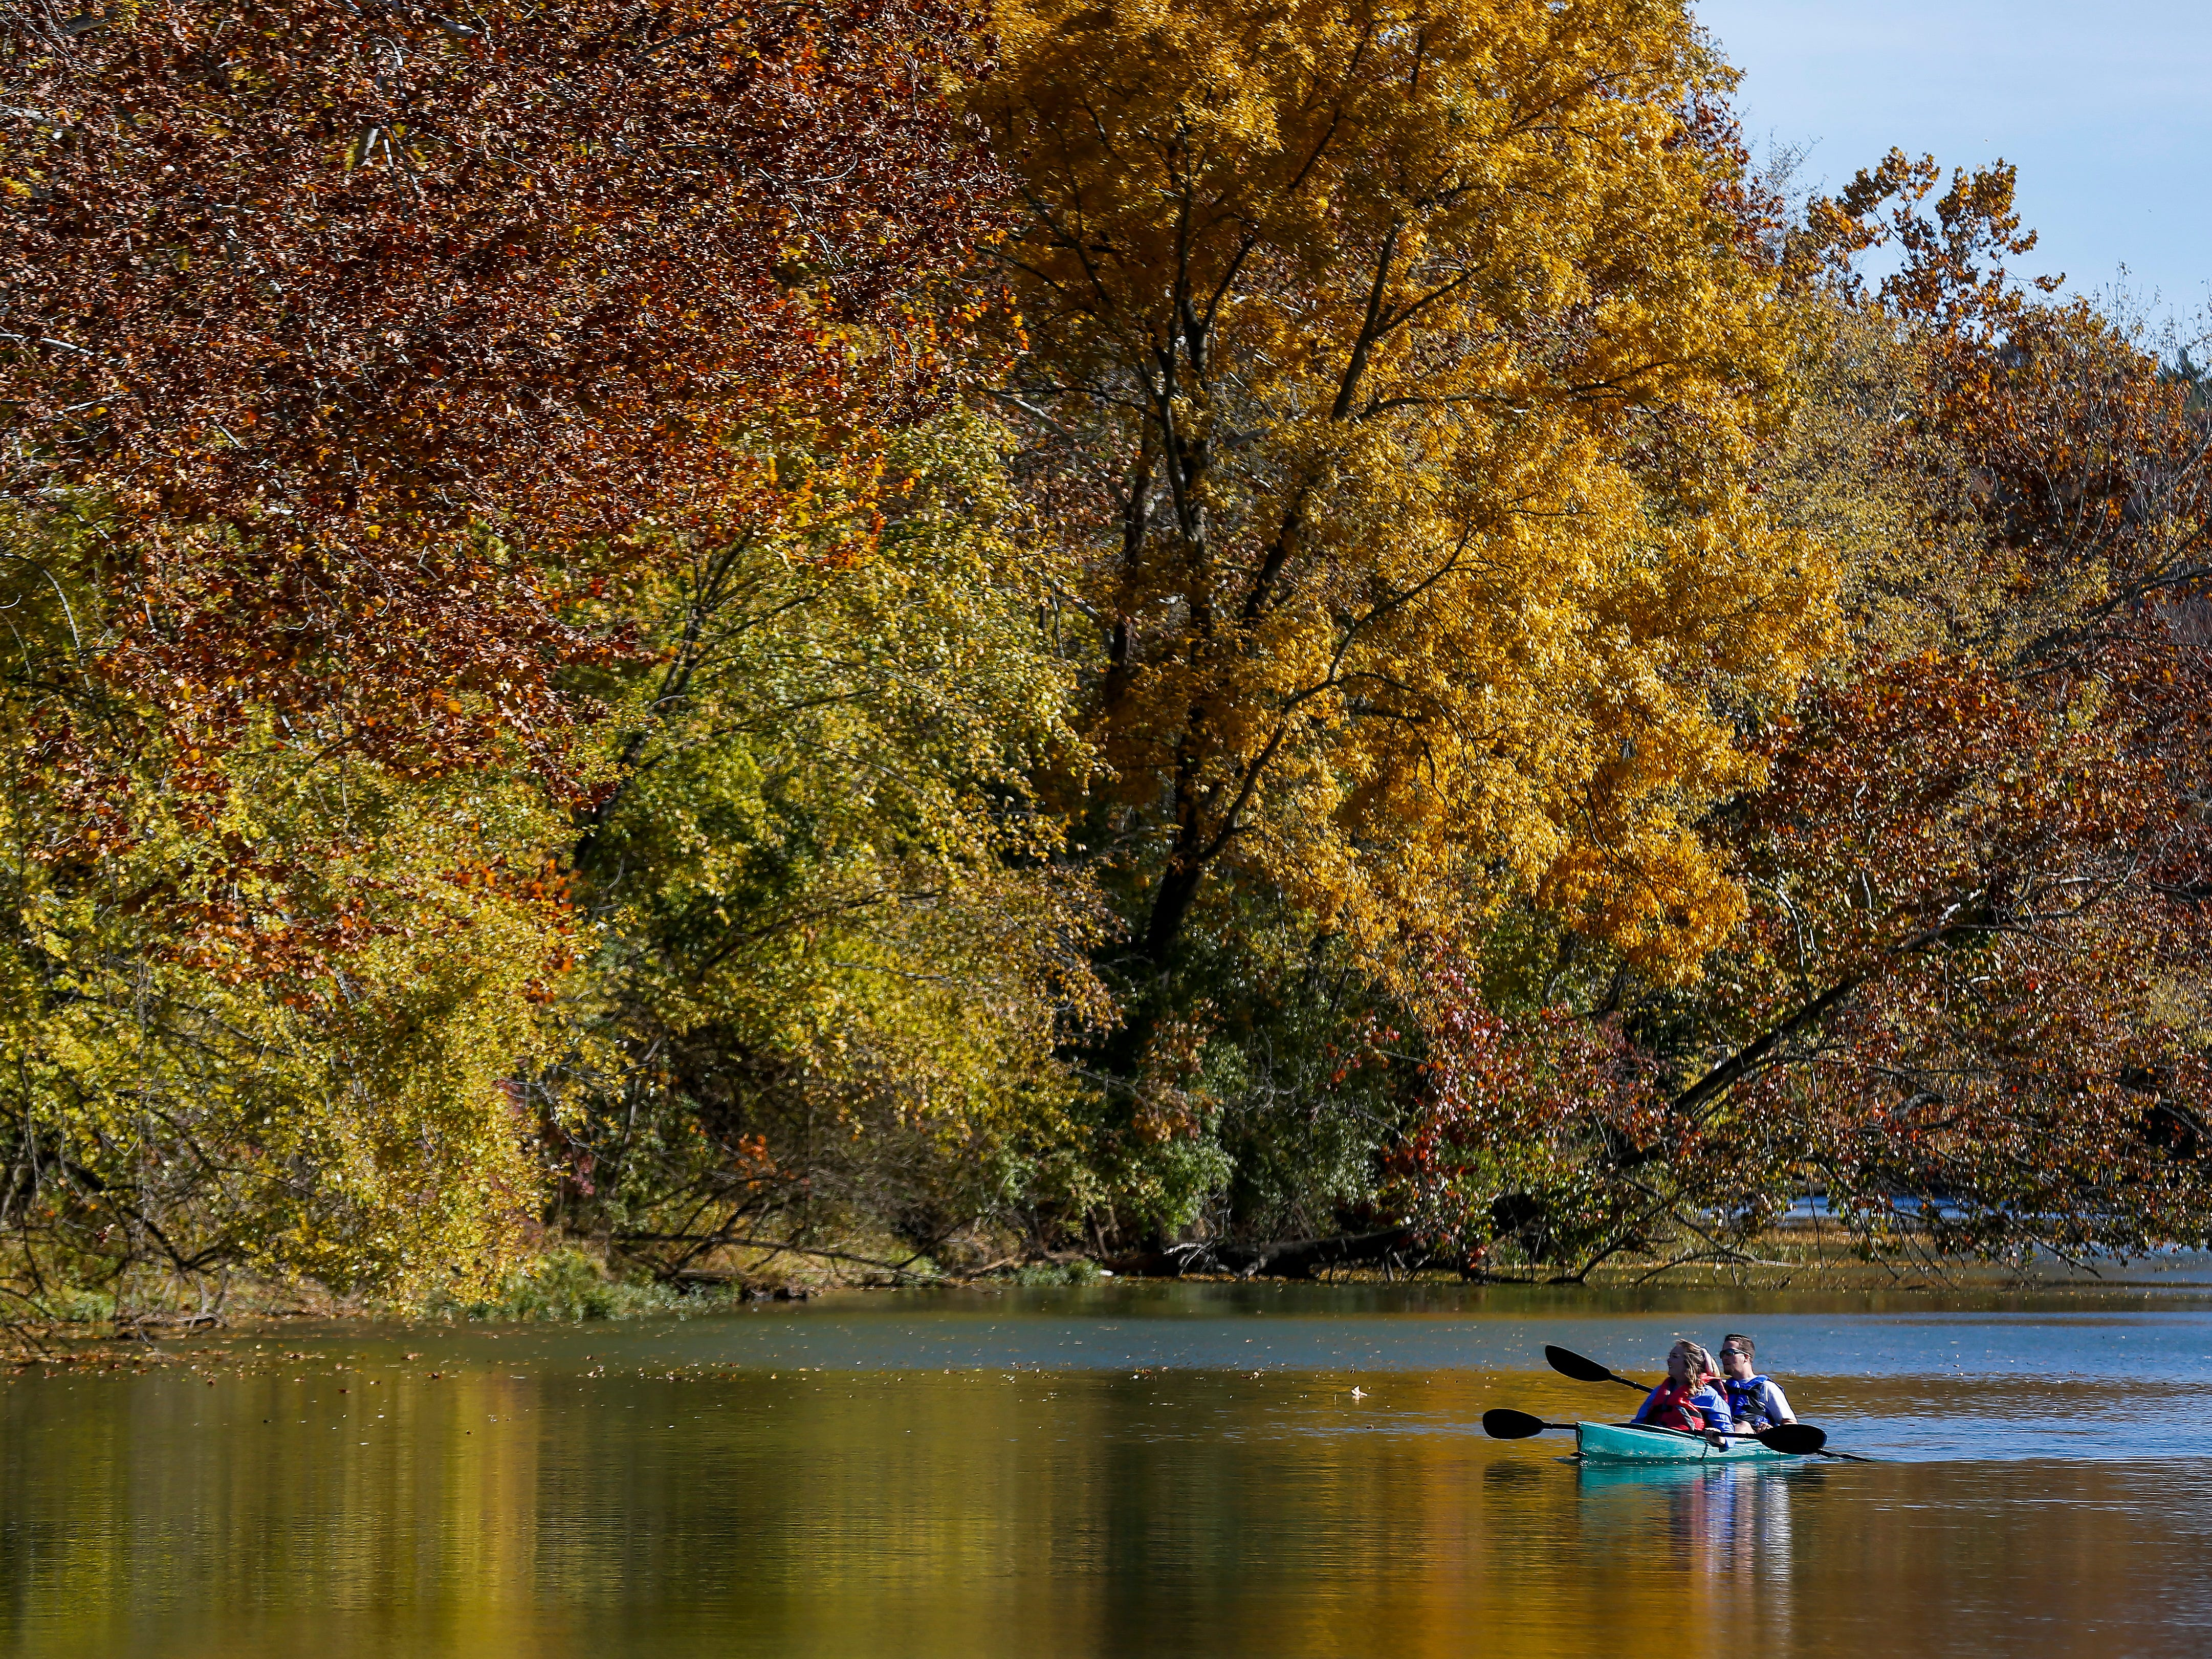 With some colorful fall trees as a backdrop, a couple paddles down the James River on Monday, Oct. 29, 2018.